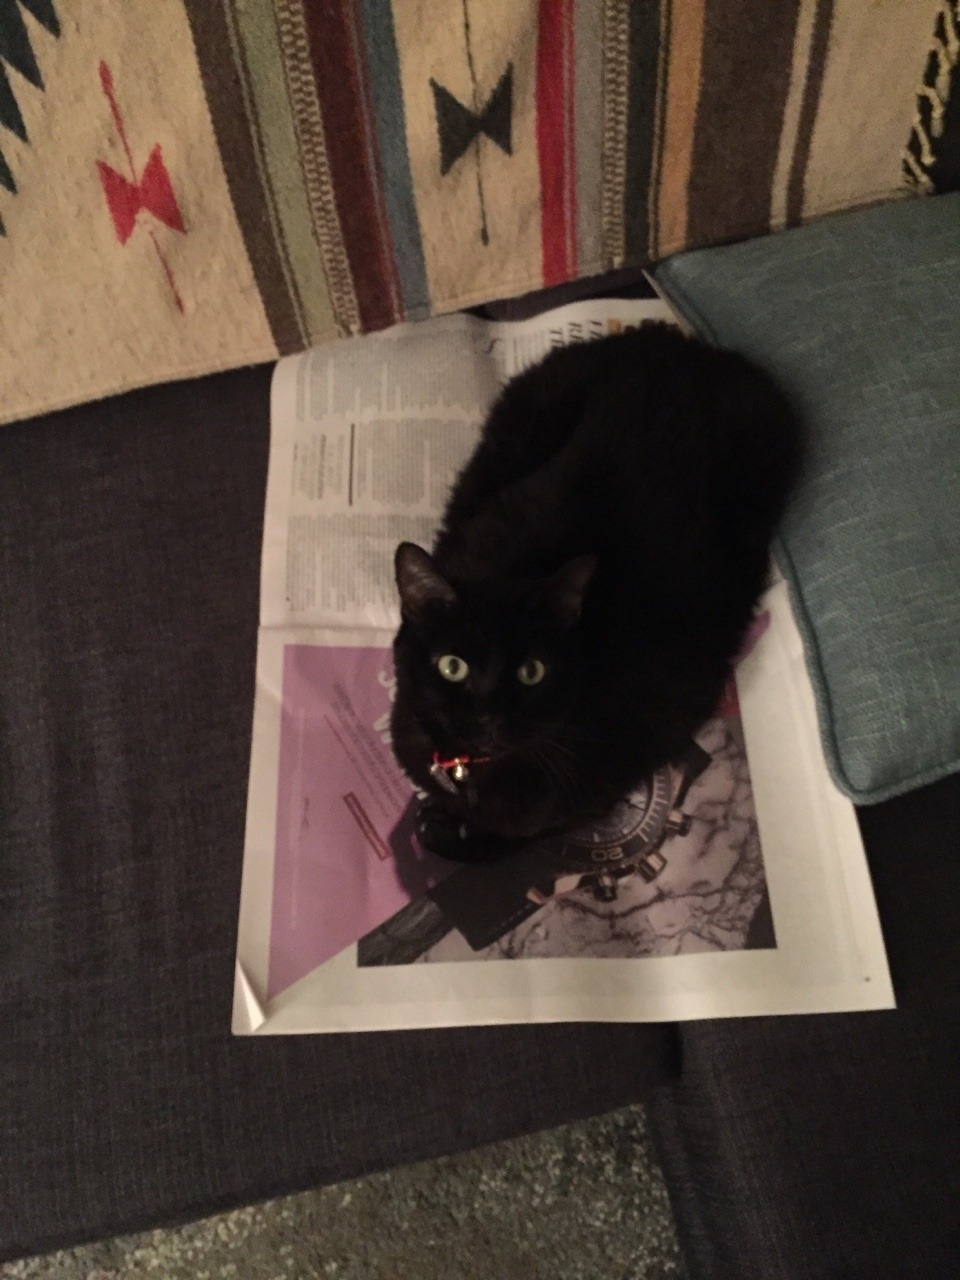 Layla loves the new format for the weekly printed issue of @wwd. I would also enjoy it if she would maybe find a new place to sit. -L